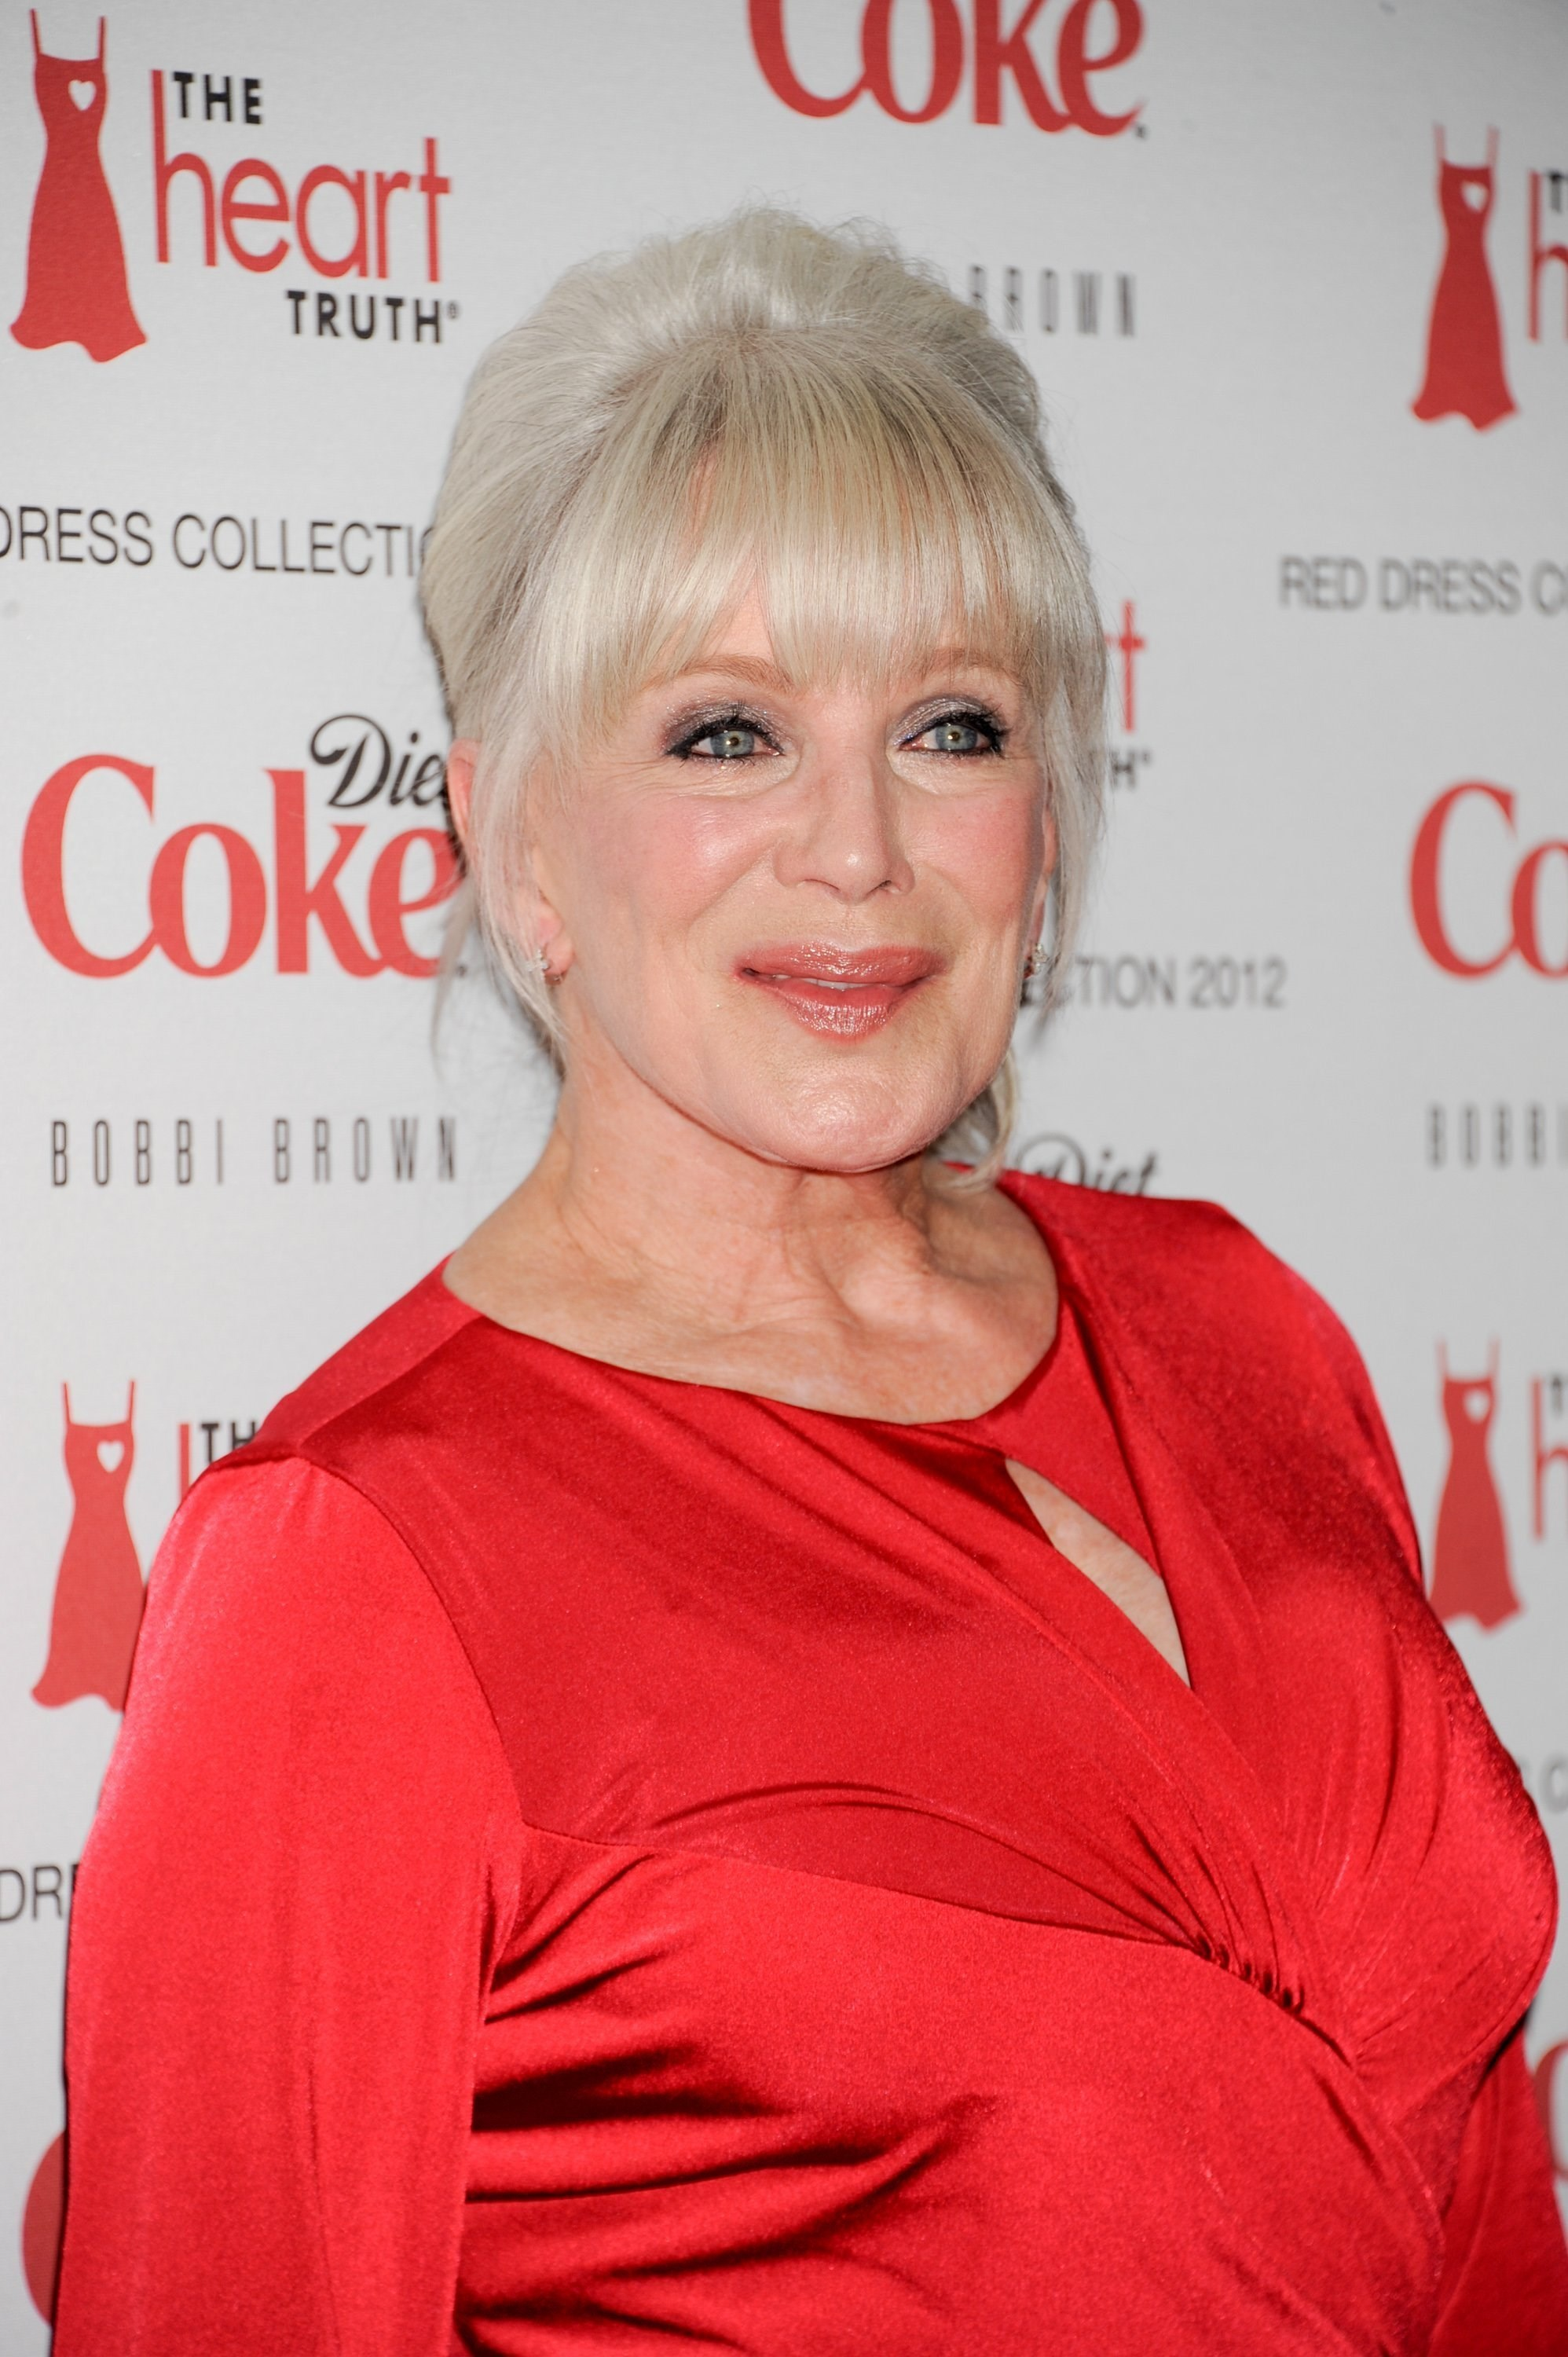 Linda Evans | Known people - famous people news and ...